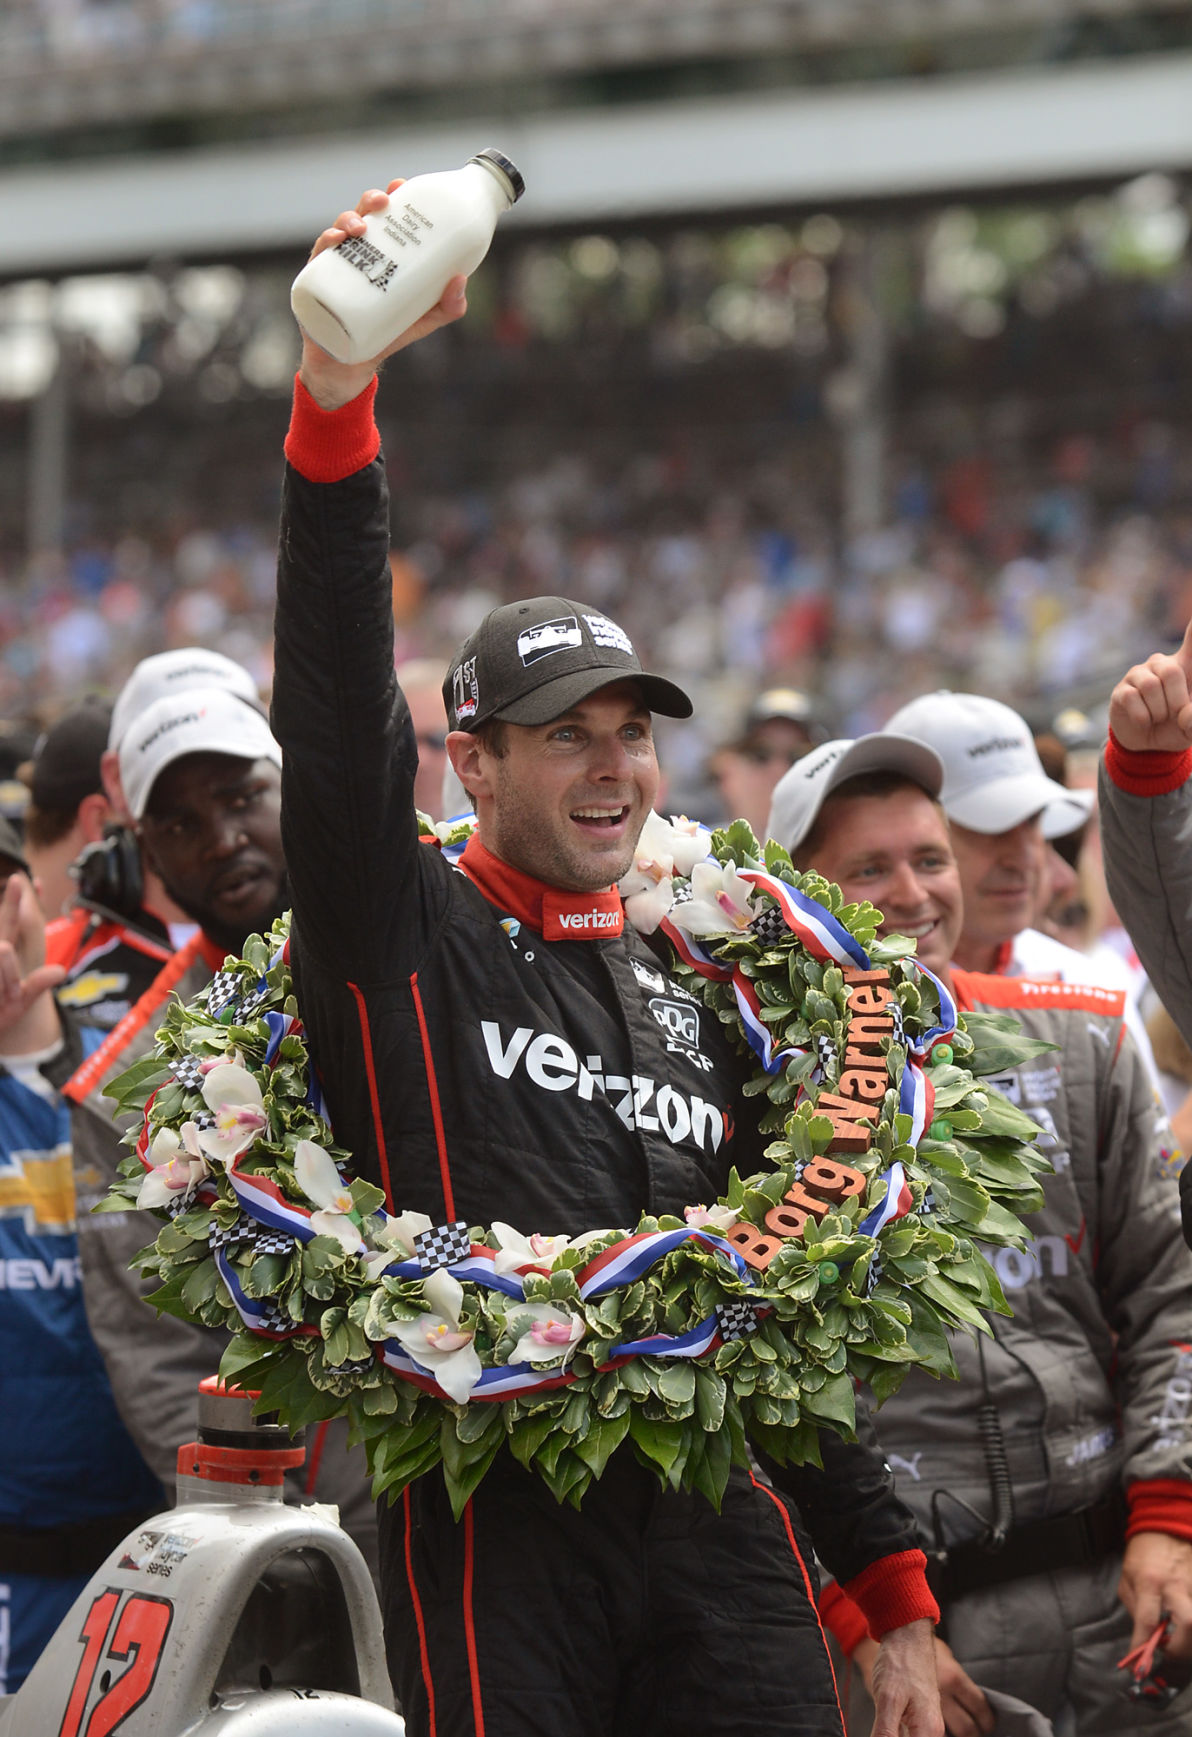 Power s elusive Indy 500 victory